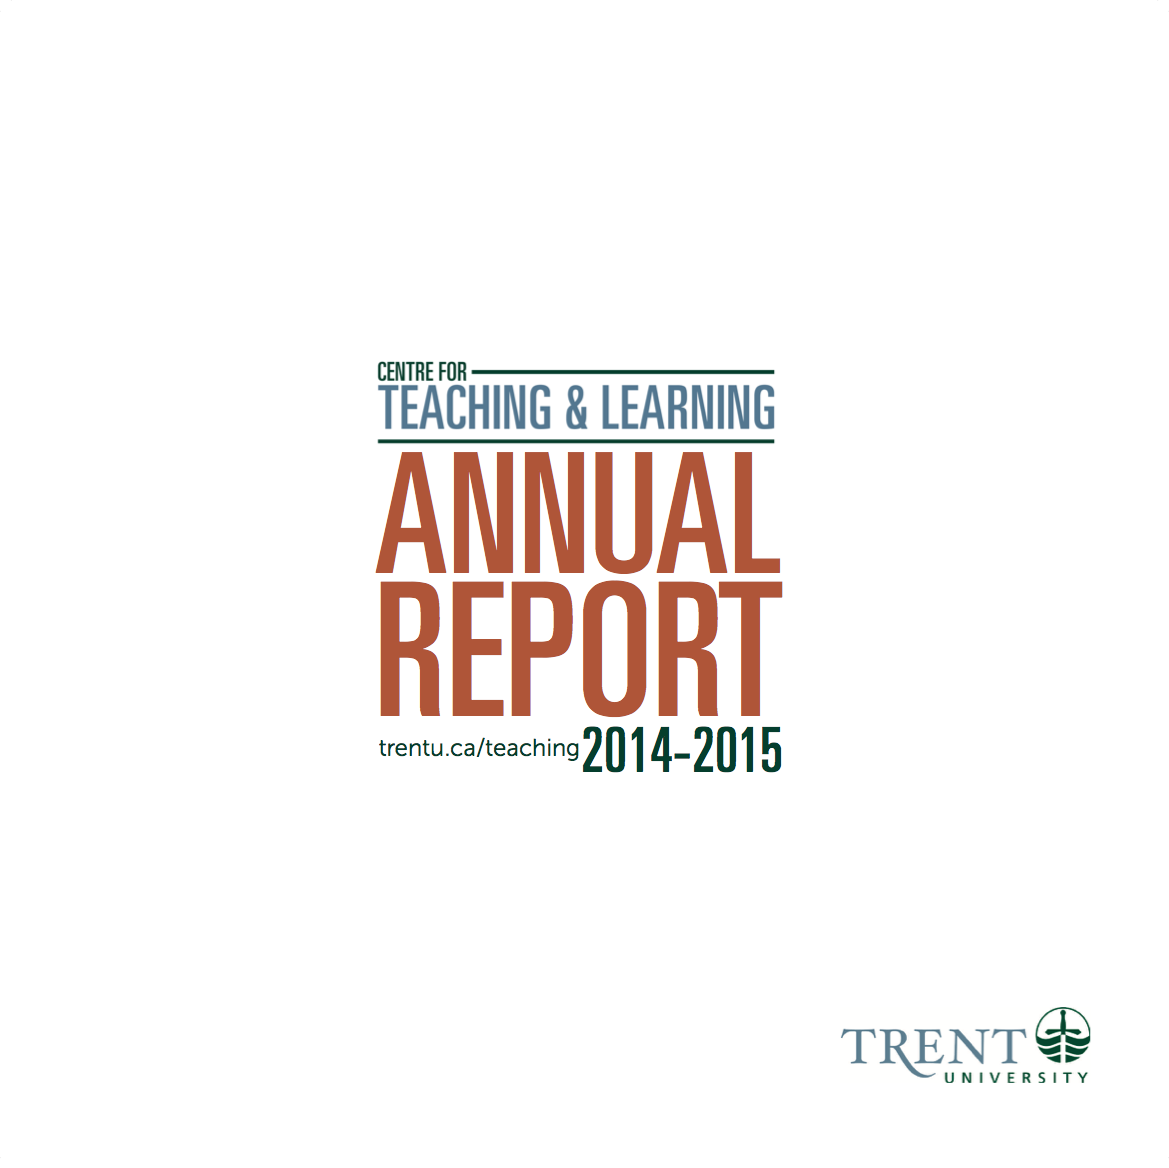 Image of Cover of the 2014-15 Annual Report, white background with orange lettering